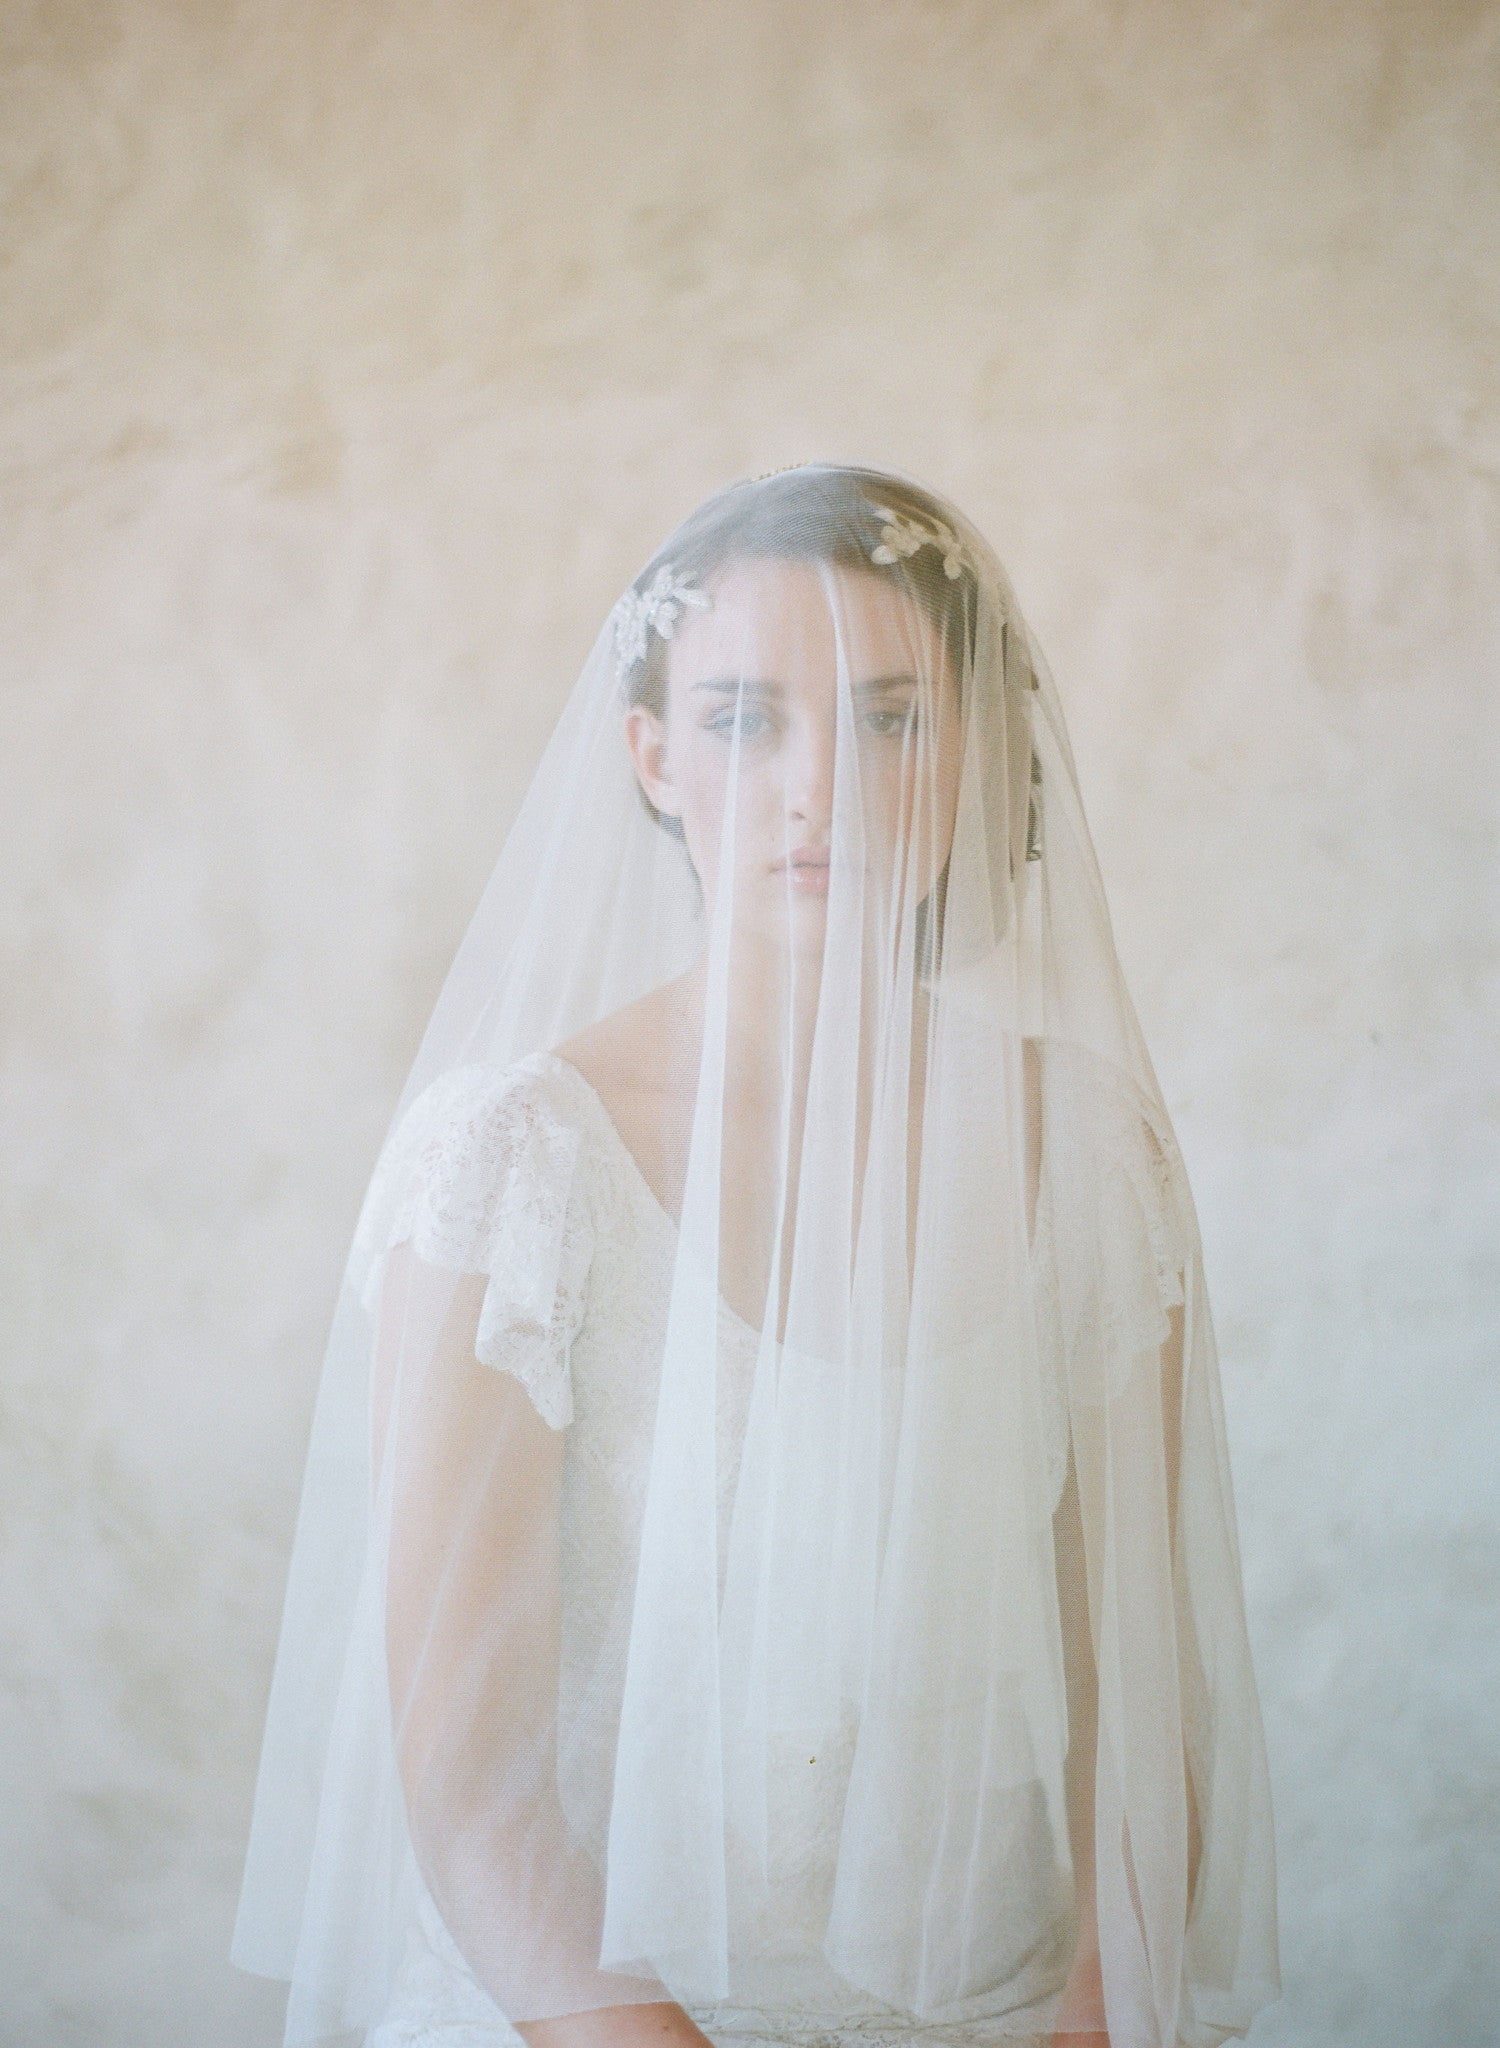 Lux tulle cathedral, chapel, fingertip length veil - Style #357lux